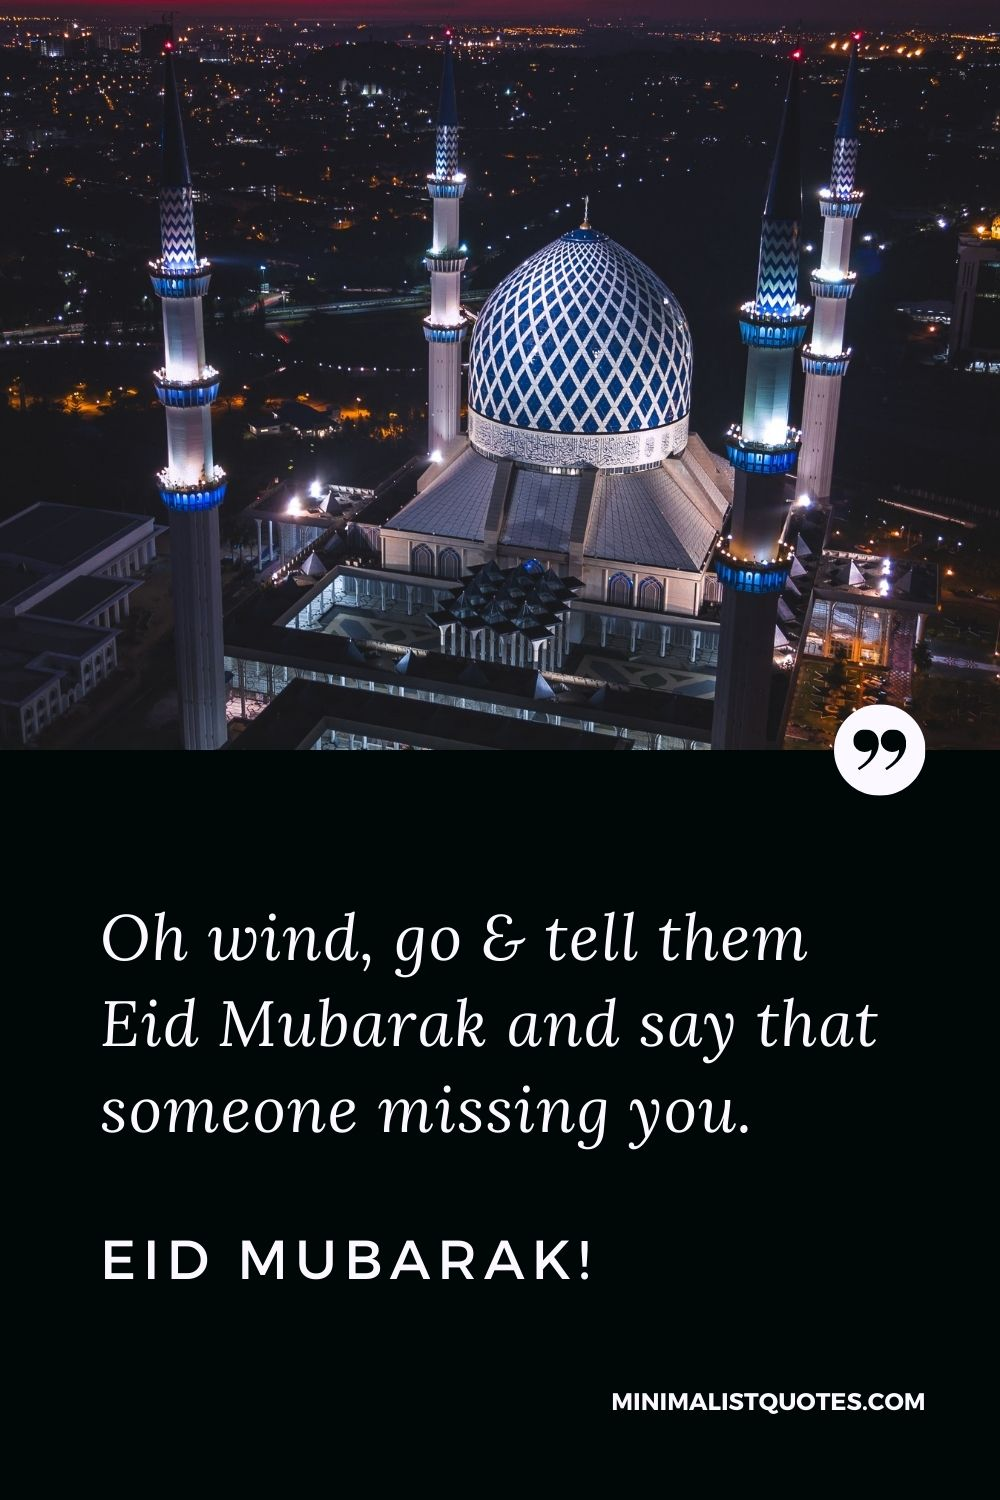 Eid al-Fitr Quote, Wish & Message With Image: Oh wind, go & tell them Eid Mubarak and say that someone missing you. Eid Mubarak!